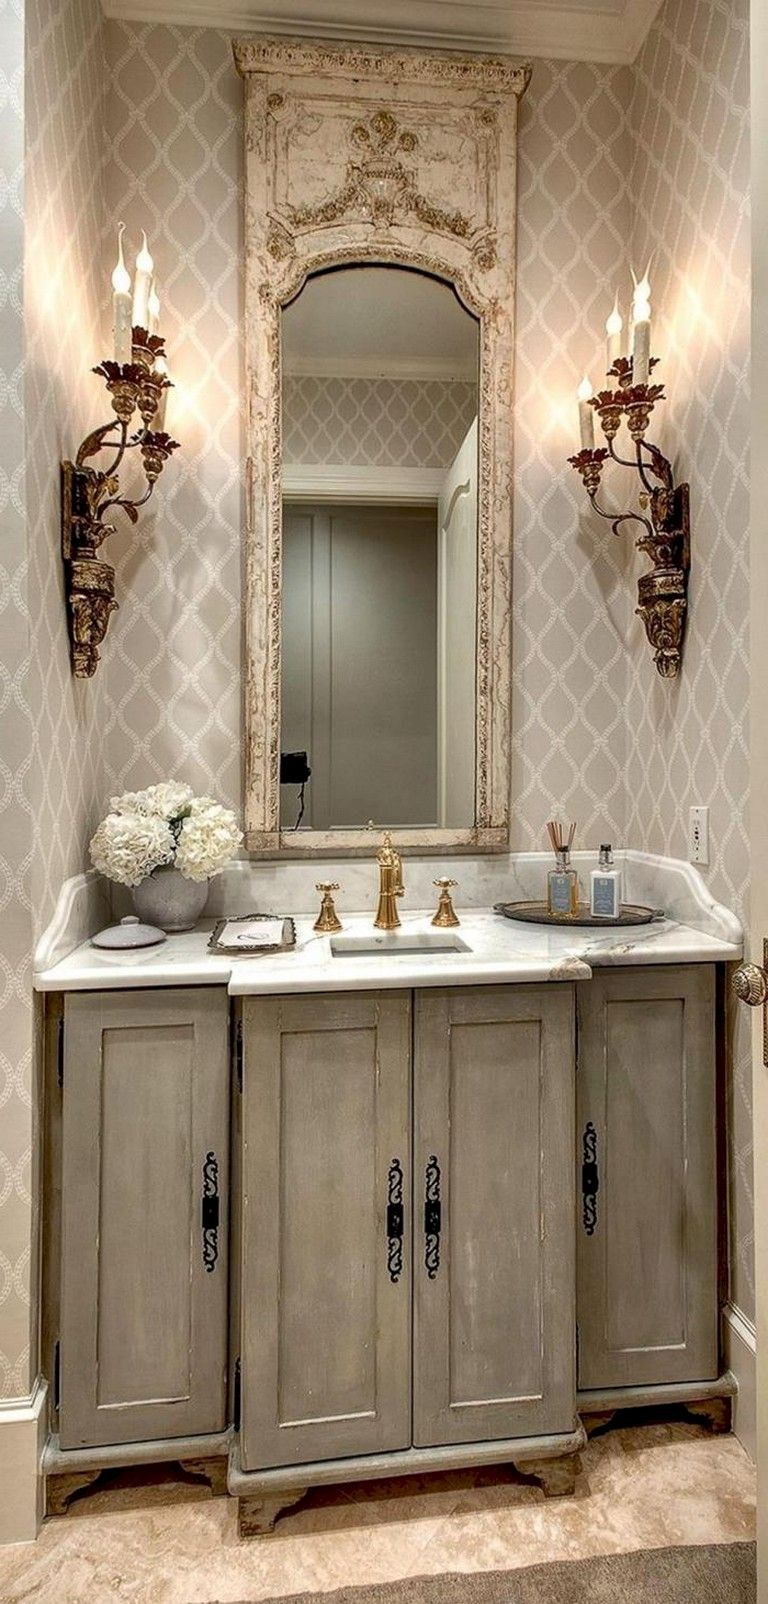 48 Amazing Country Bathrooms Ideas You Can Imitate Roundecor French Country Bathroom French Country Decorating Bathroom Country Bathroom